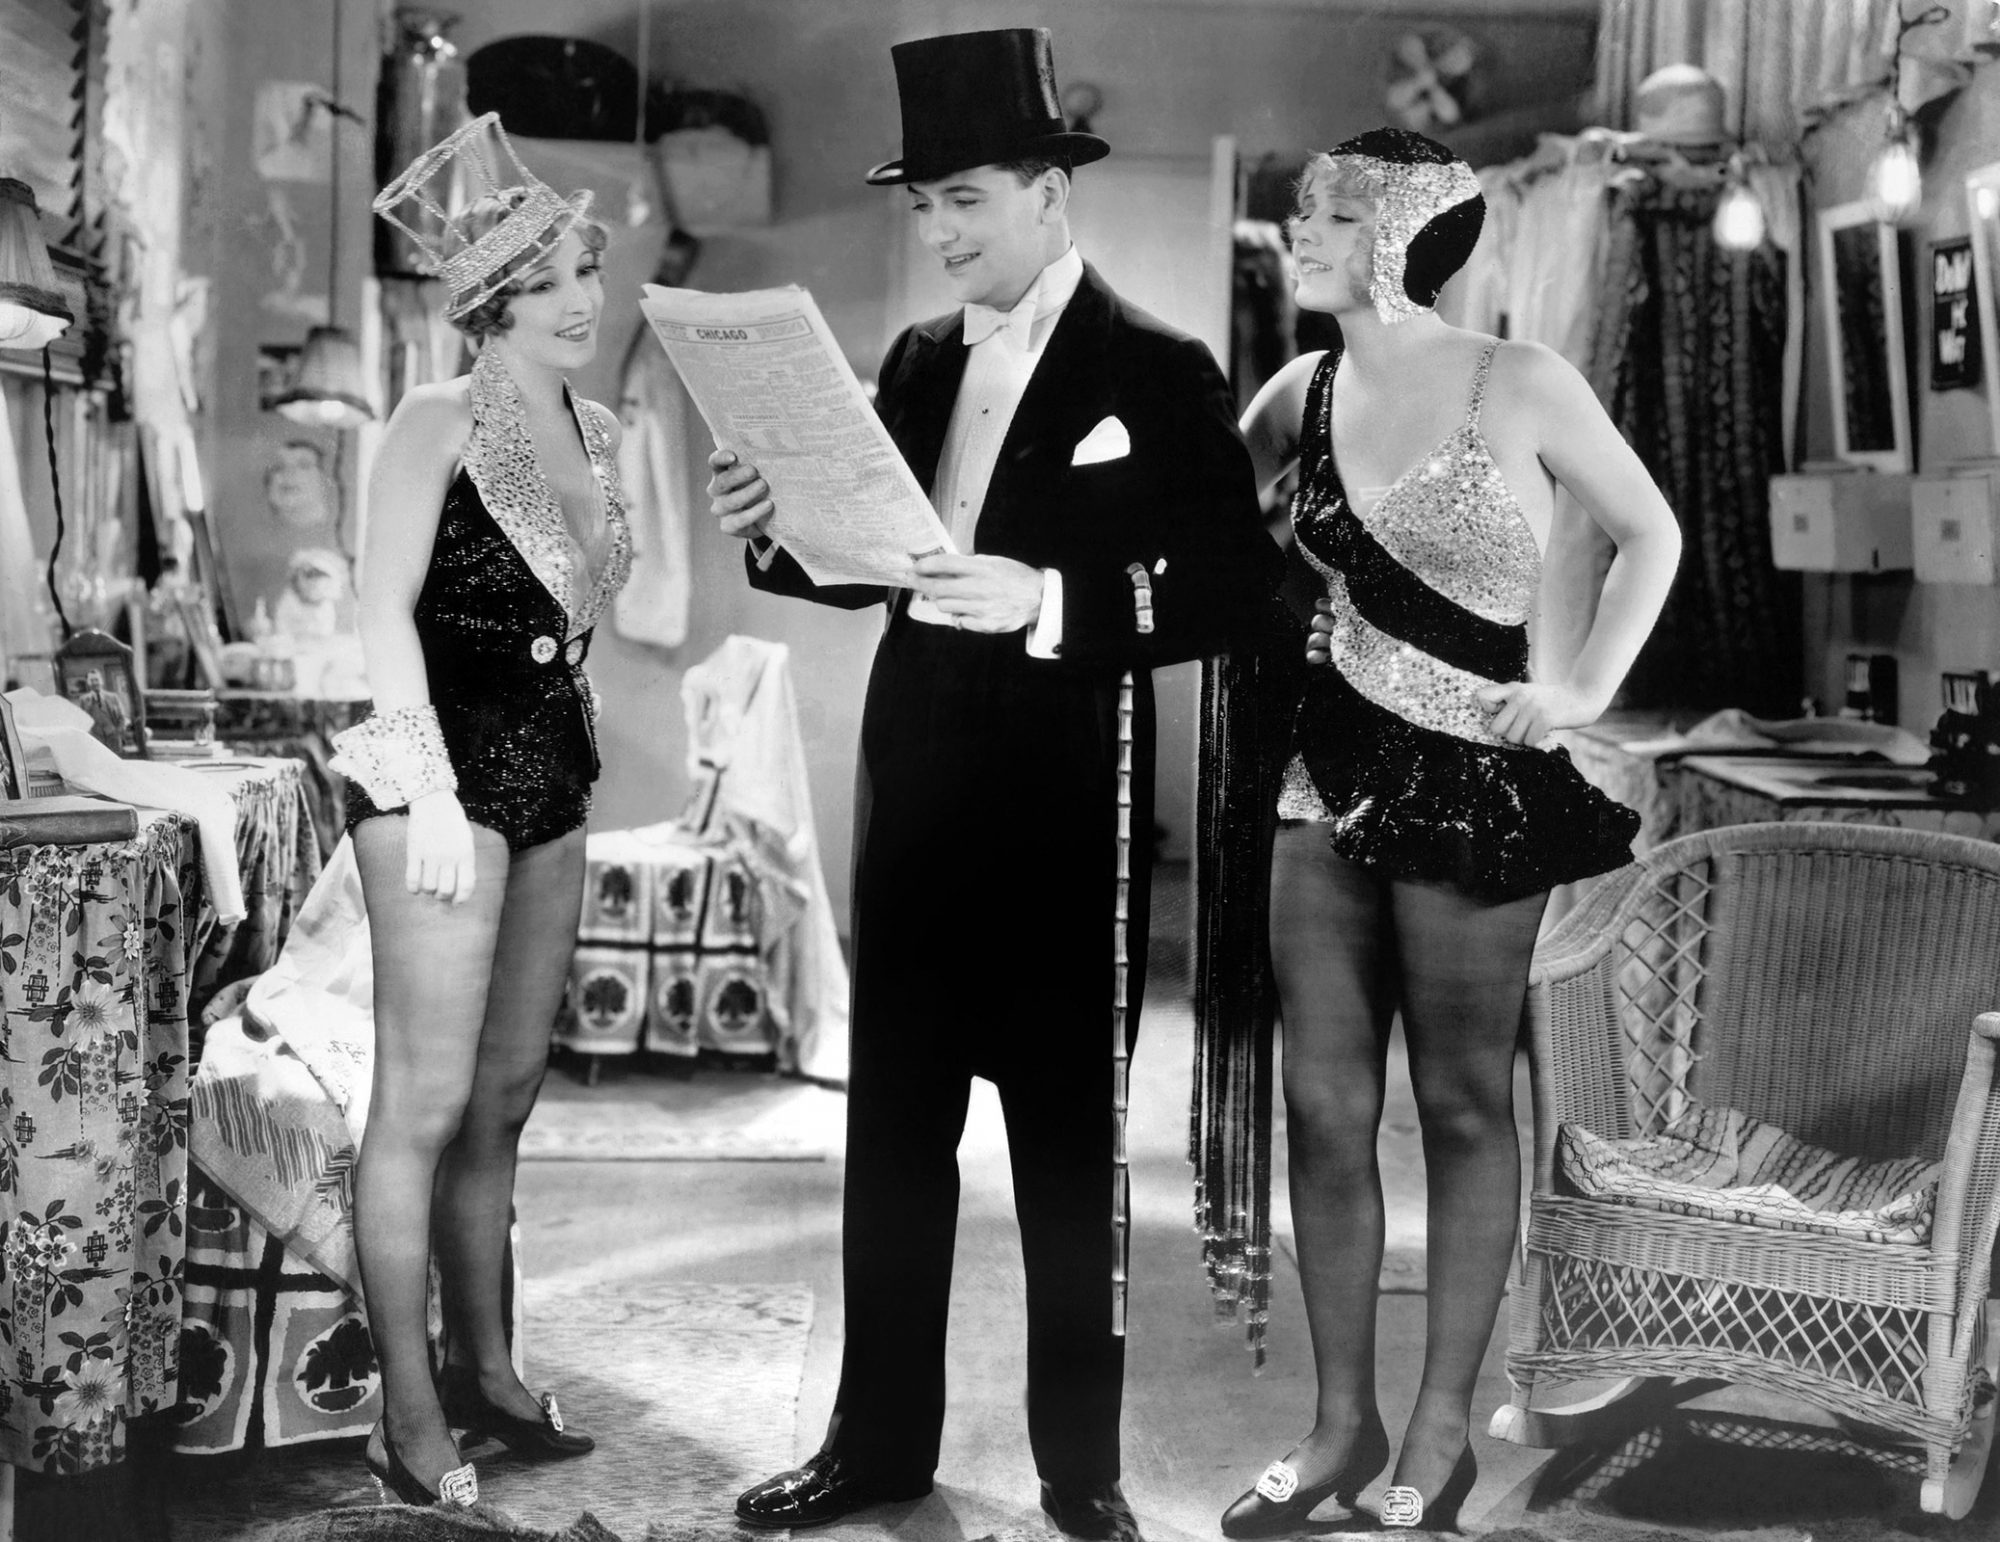 THE BROADWAY MELODY, from left: Bessie Love, Charles King, Anita Page, 1929